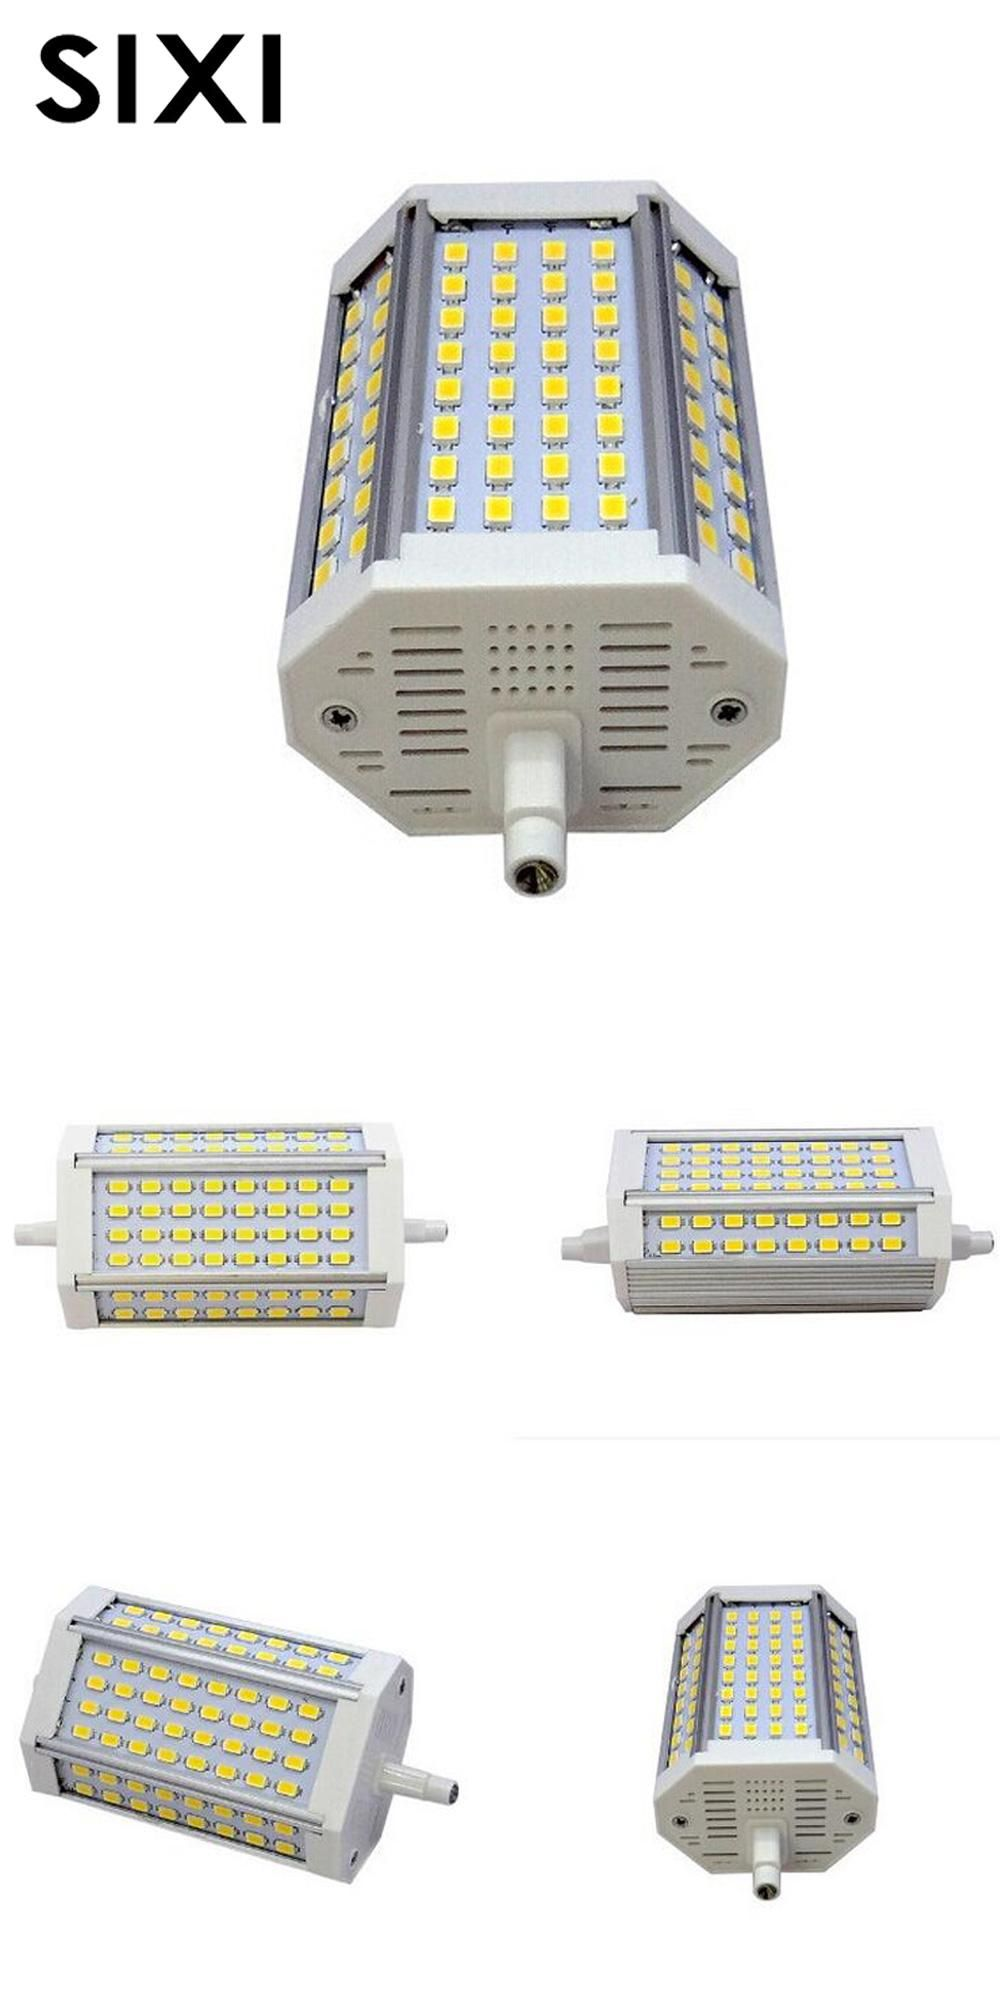 Visit To Buy Dimmable R7s 30w 118mm Led Bulb Floodlight Bulb R7s Light J118 R7s Lamp No Fan No Noise Replace Halogen Lamp Ac85 265 Halogen Lamp Led Bulb Bulb